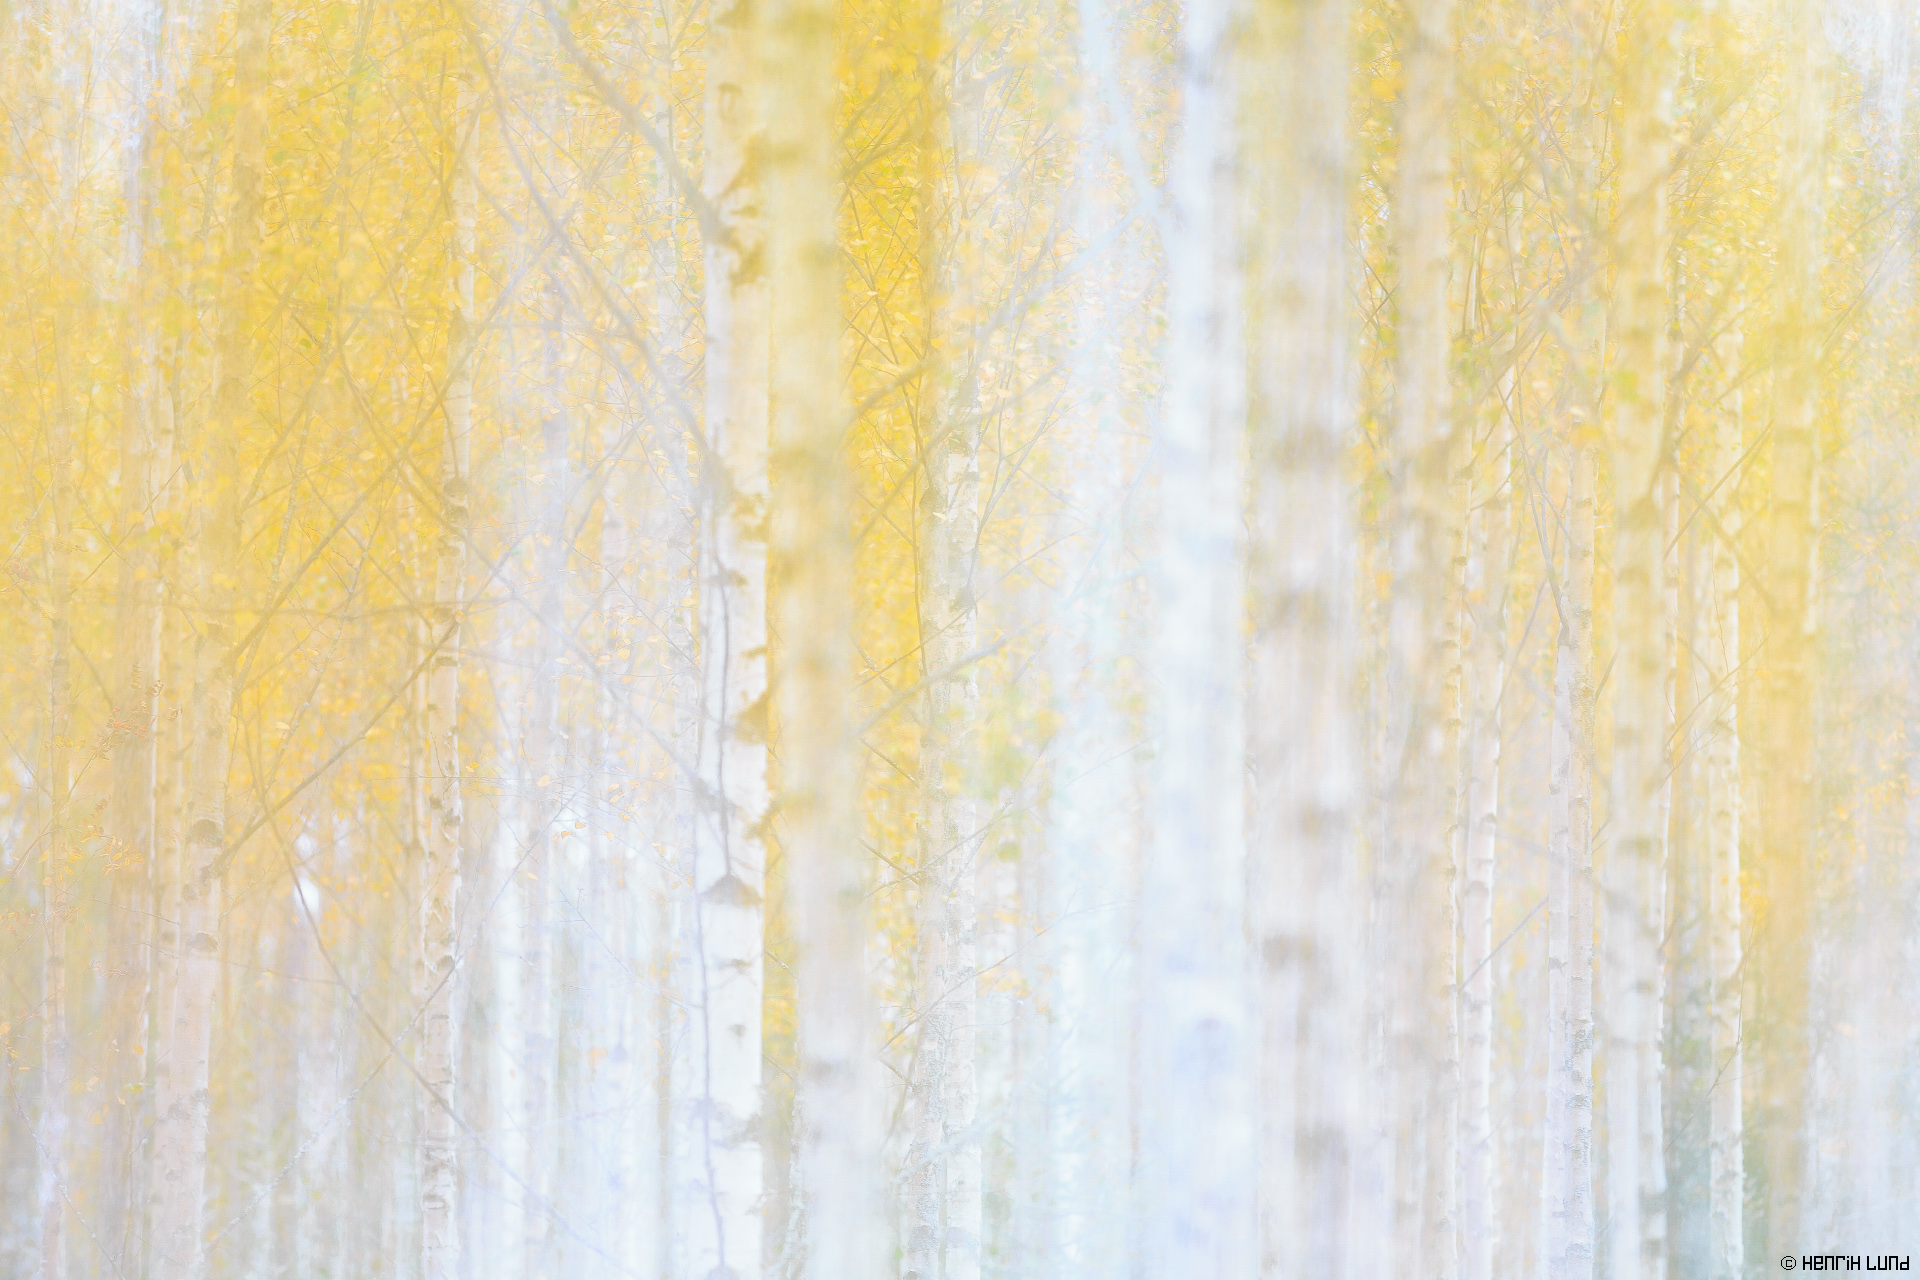 A multiple exposure made-in-camera out of two images. Birchforest in autumn colors. Lappträsk, Finland, October 2014.